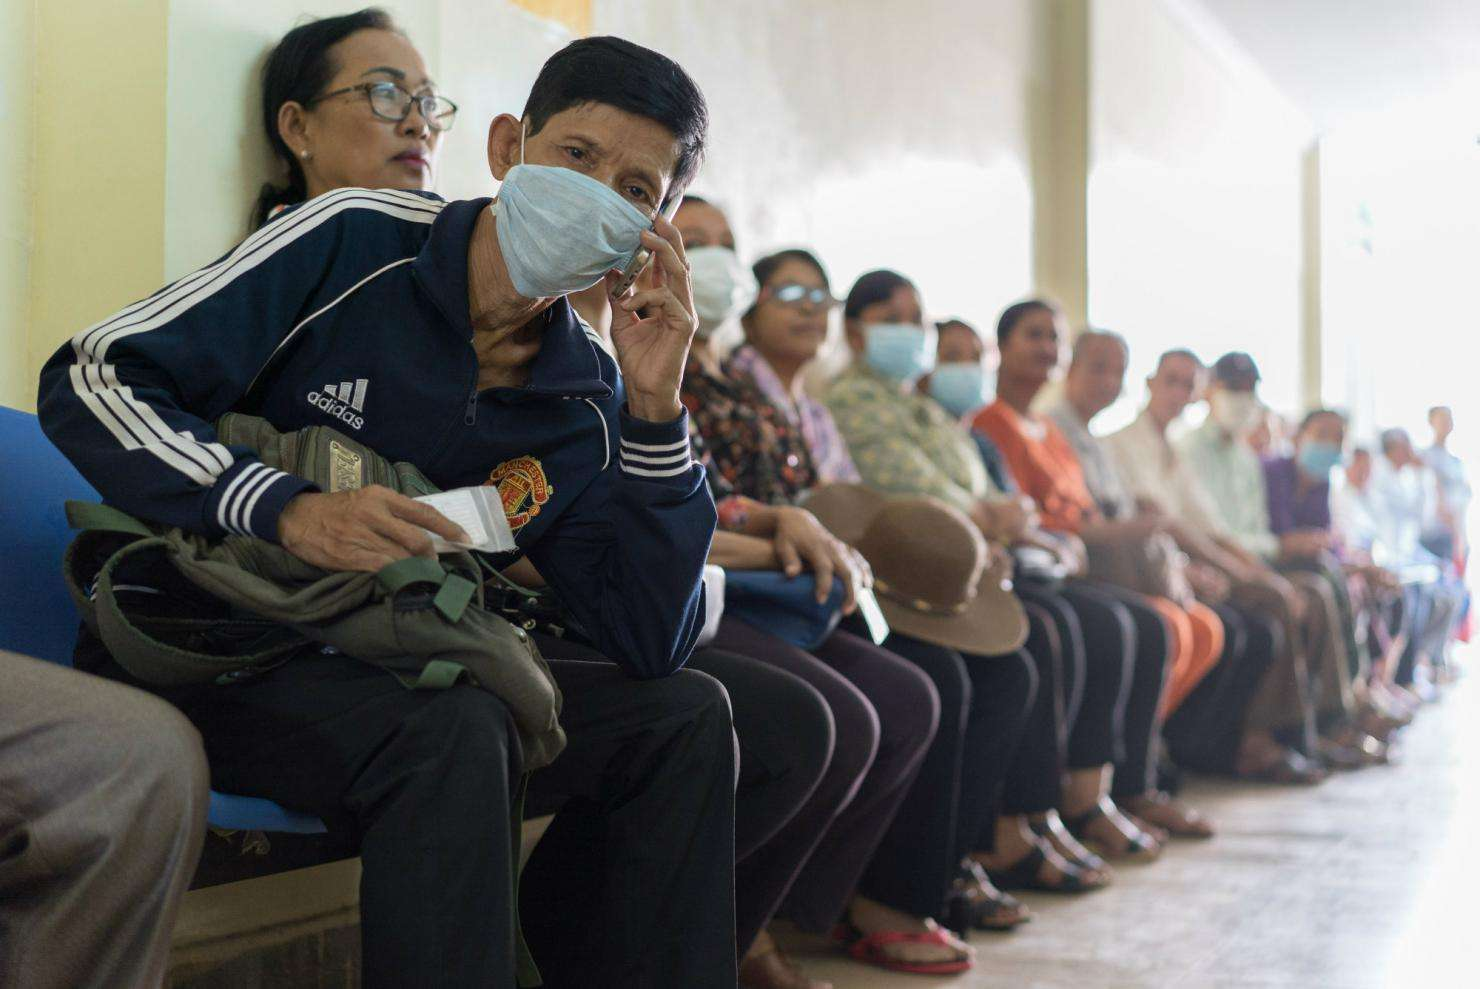 Patients wait for their appointment at the MSF Hepatitis C clinic in Phnom Penh, Cambodia.